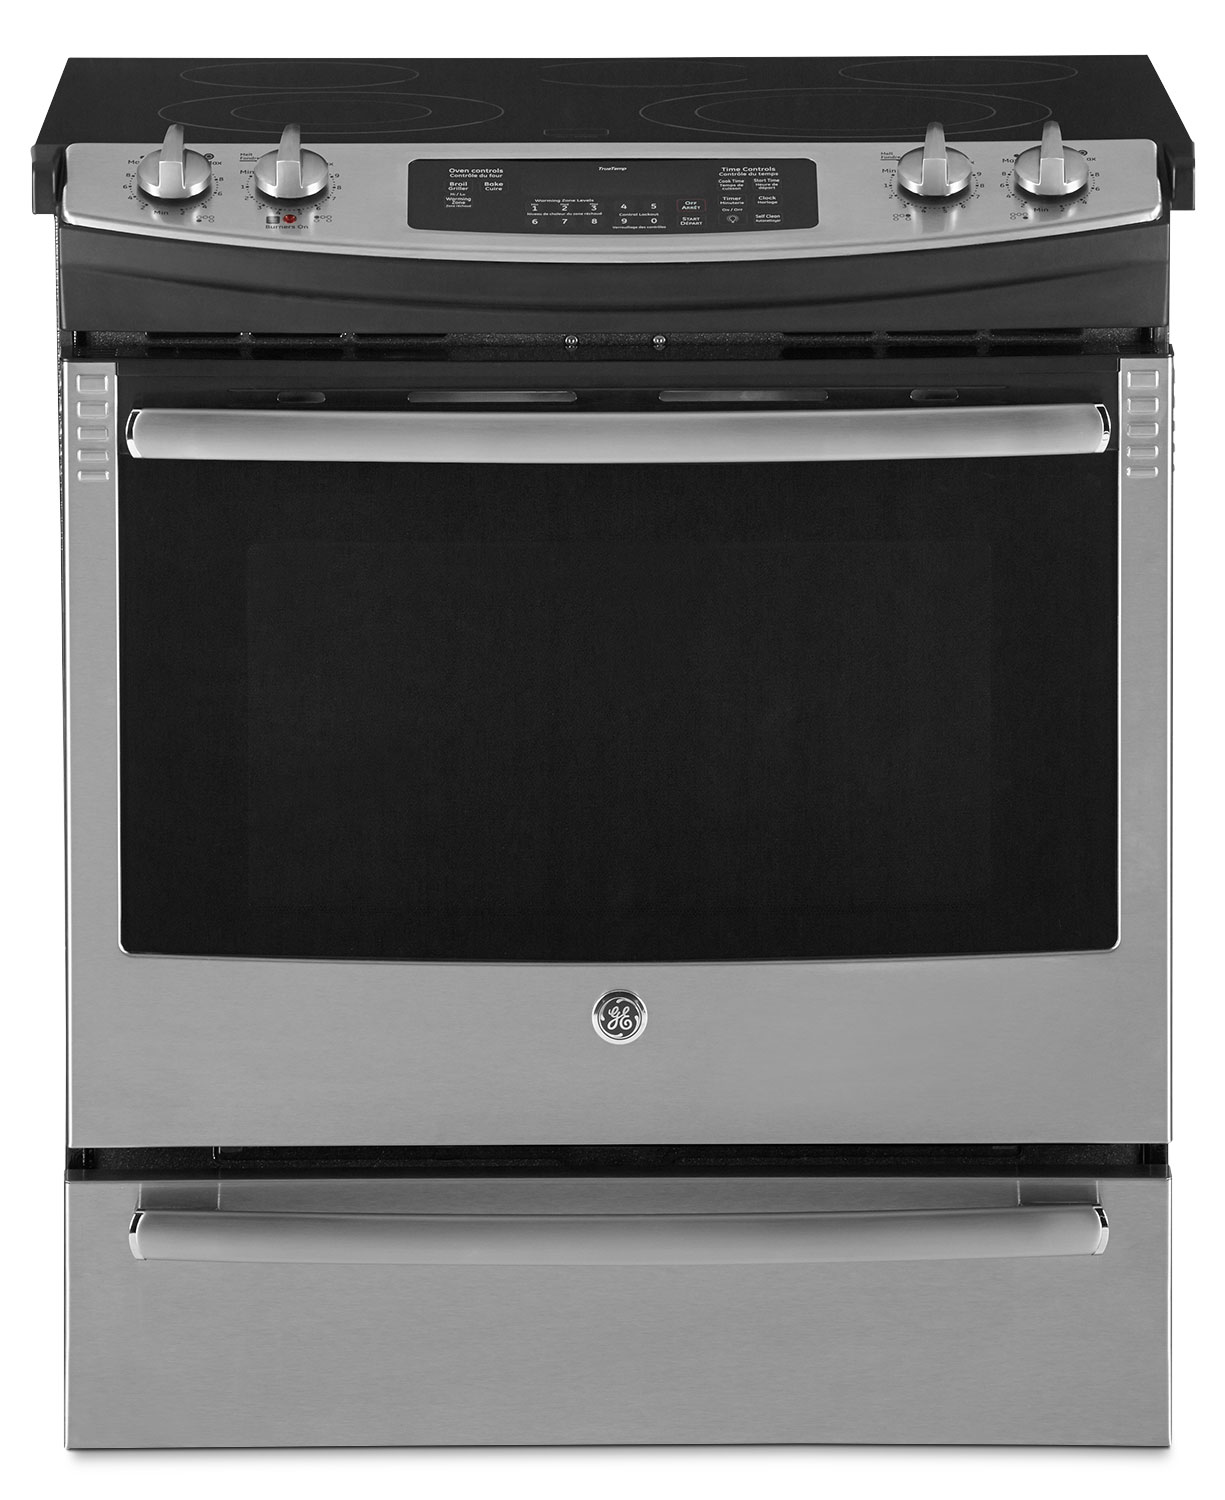 Cooking Products - GE Slide-In Electric Range JCS630SFSS